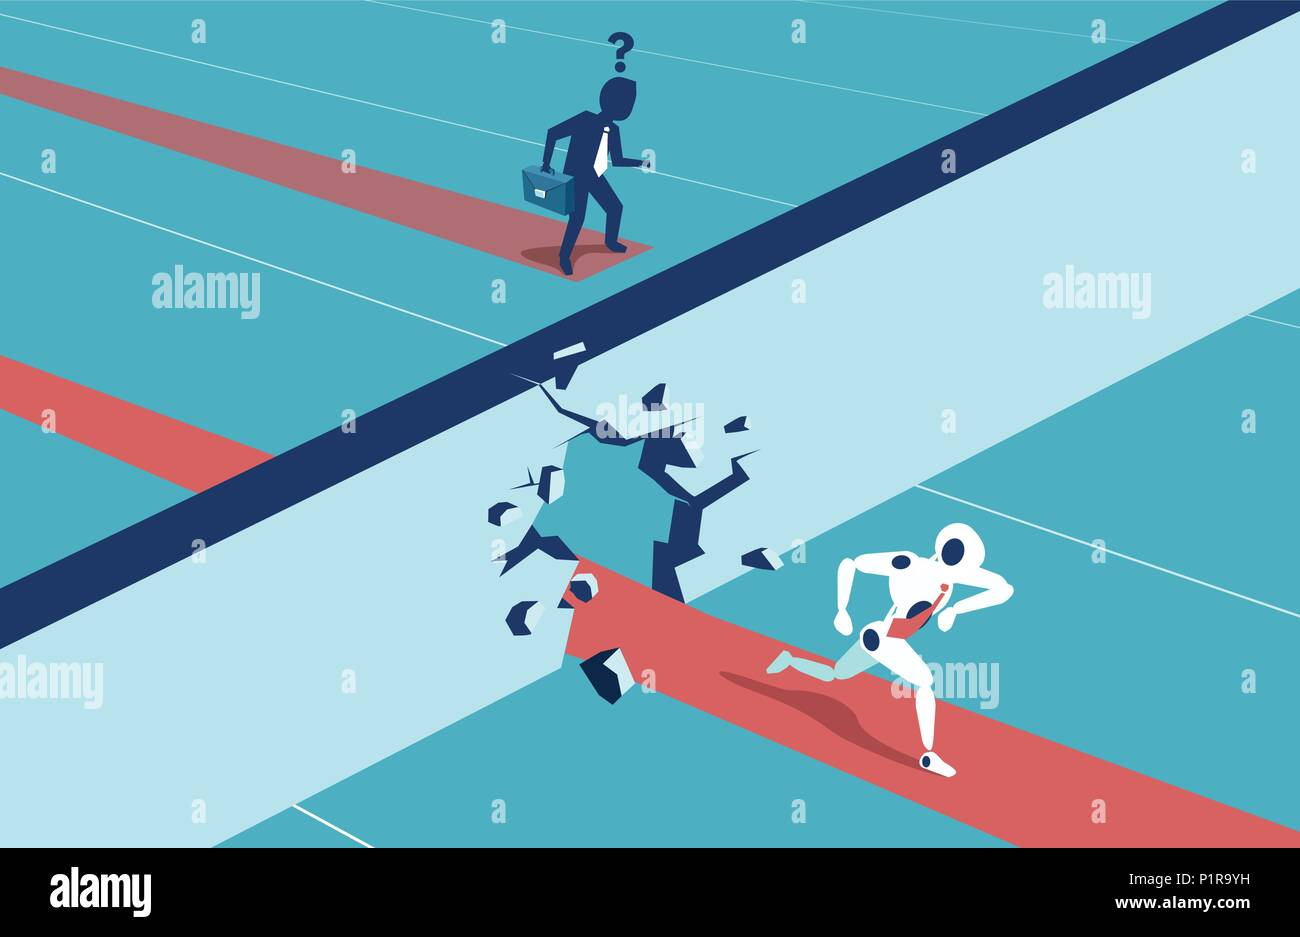 Humans vs Robots. Business competition. Illustration flat style vector - Stock Vector